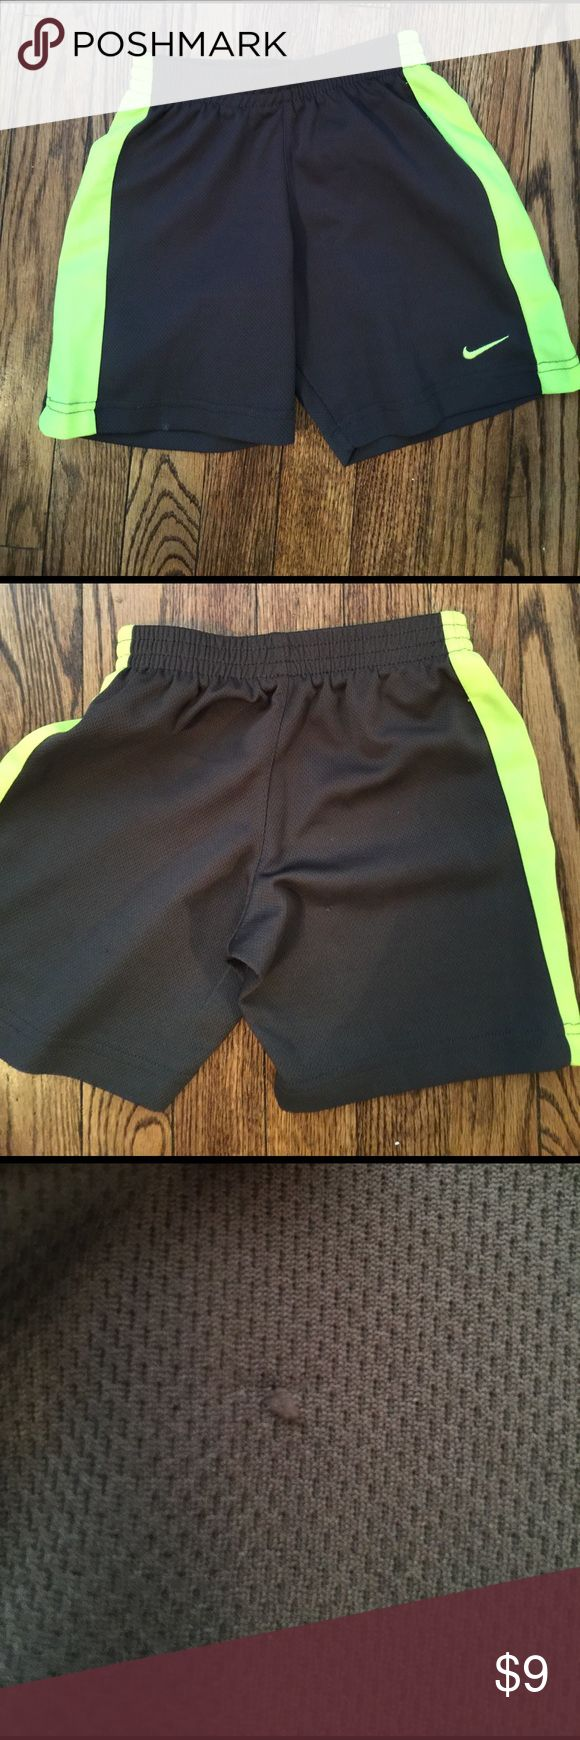 Boys Nike shorts size 5 grey with green detail In great shape small snag on back as seen in photo. Priced to sell. Nike Bottoms Shorts